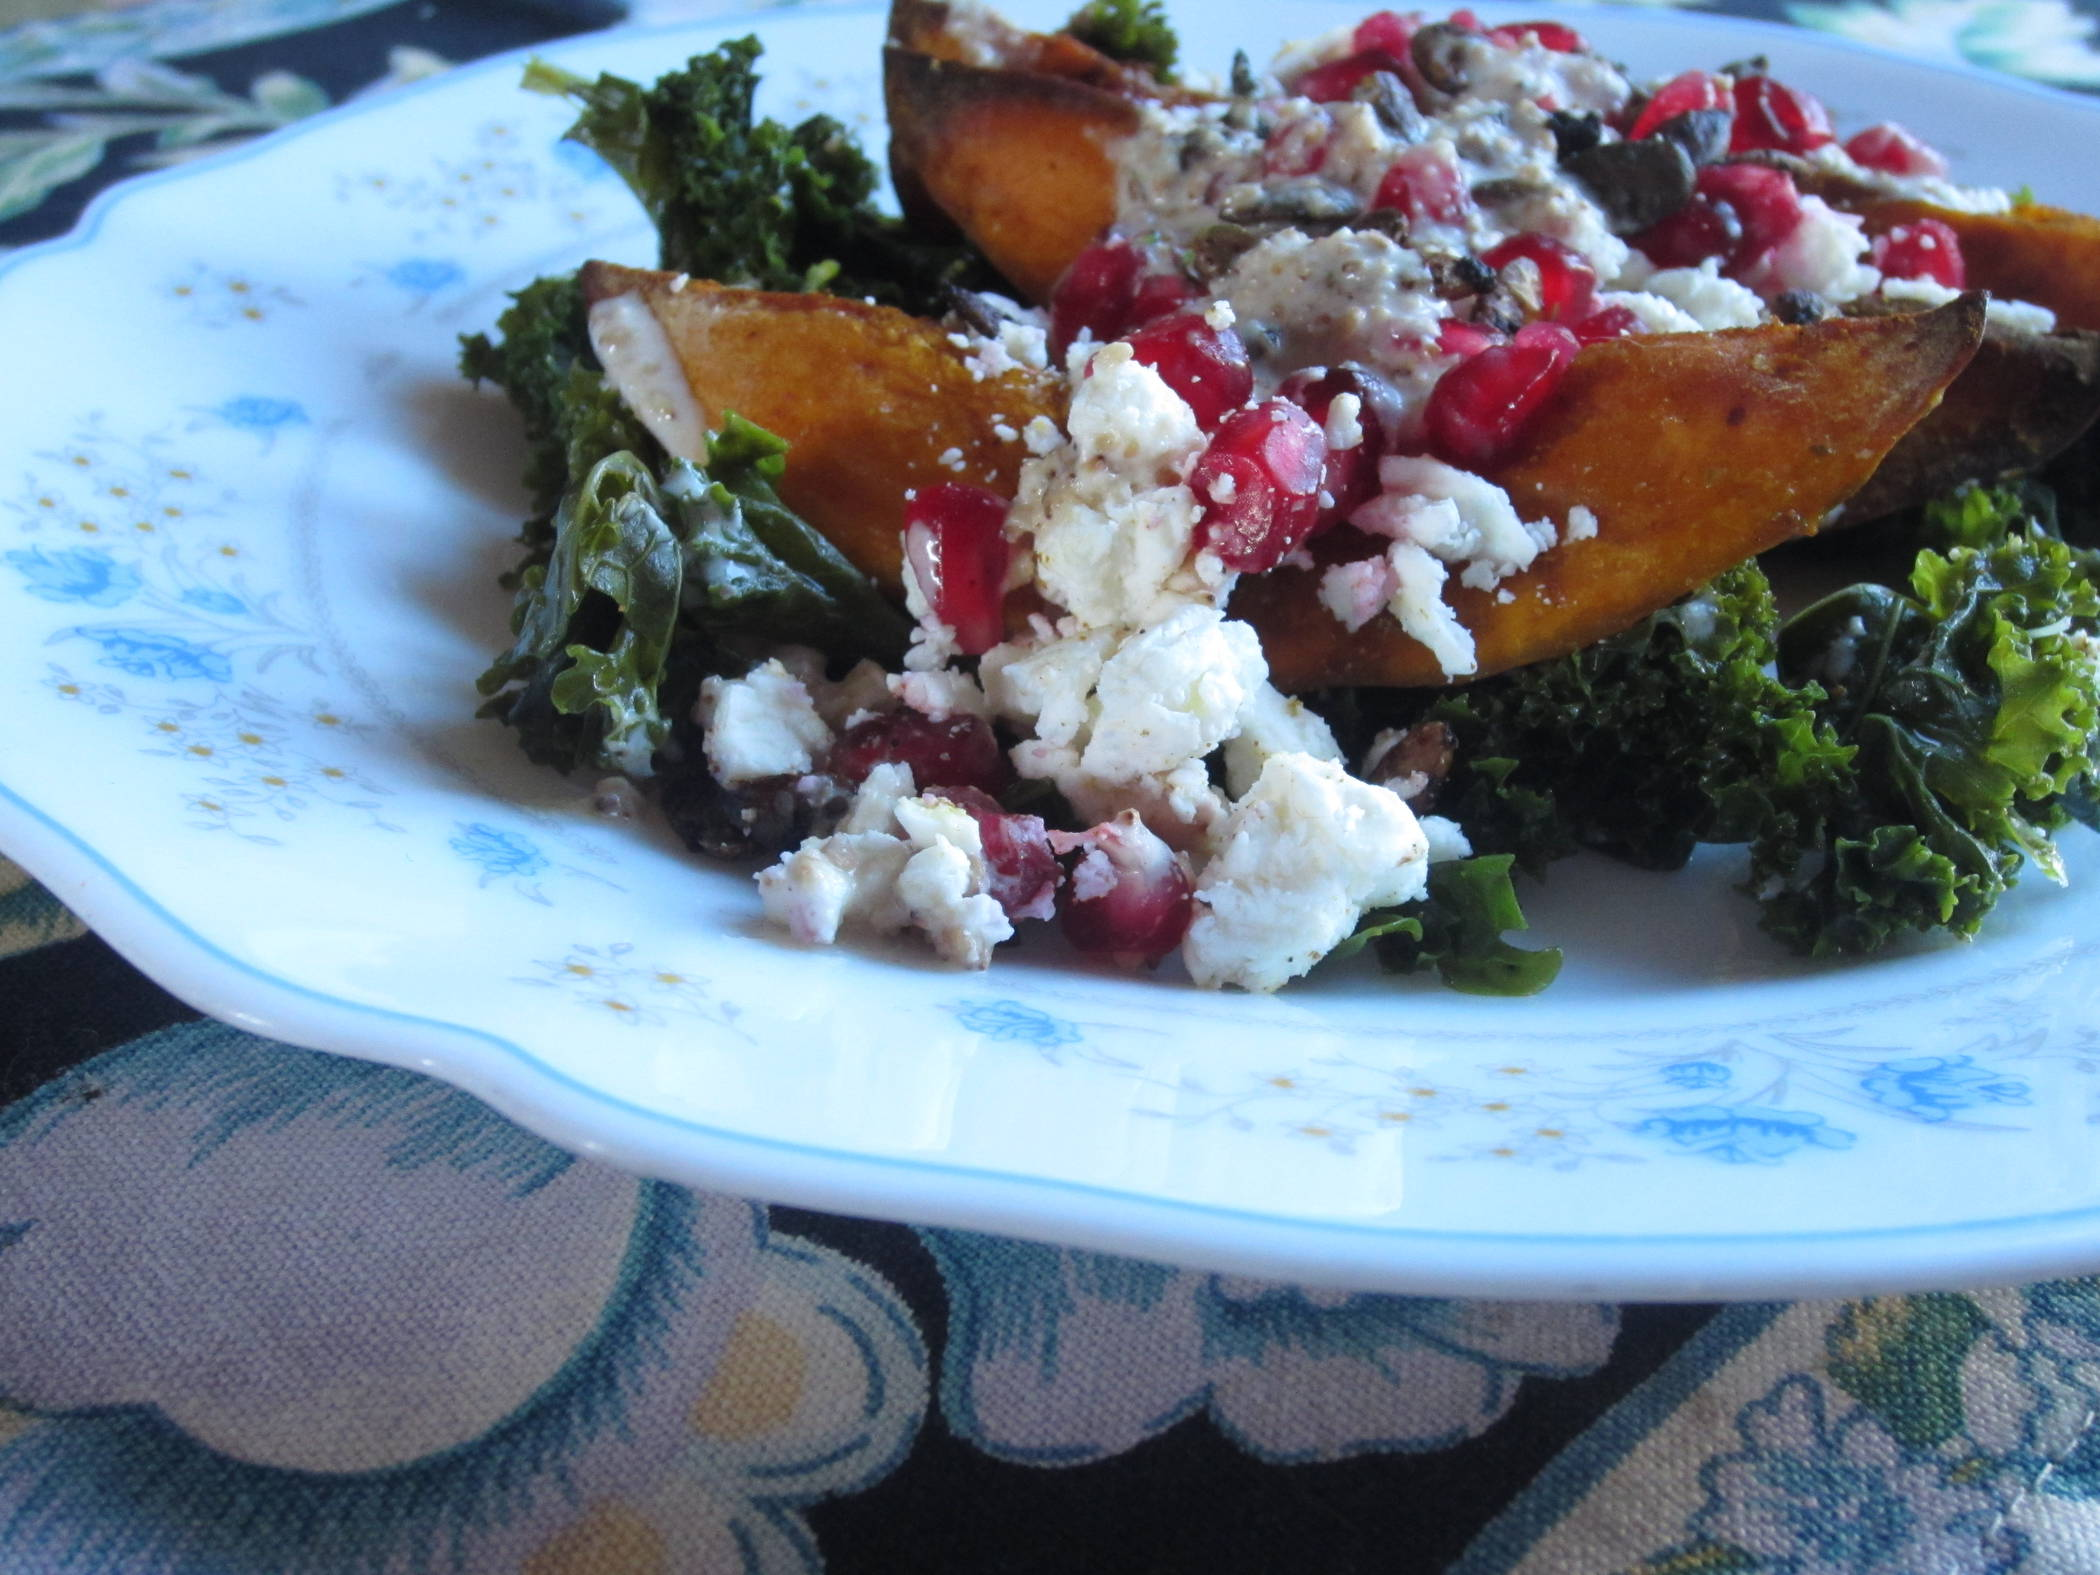 Squash, Feta and Pomegranate with Kale